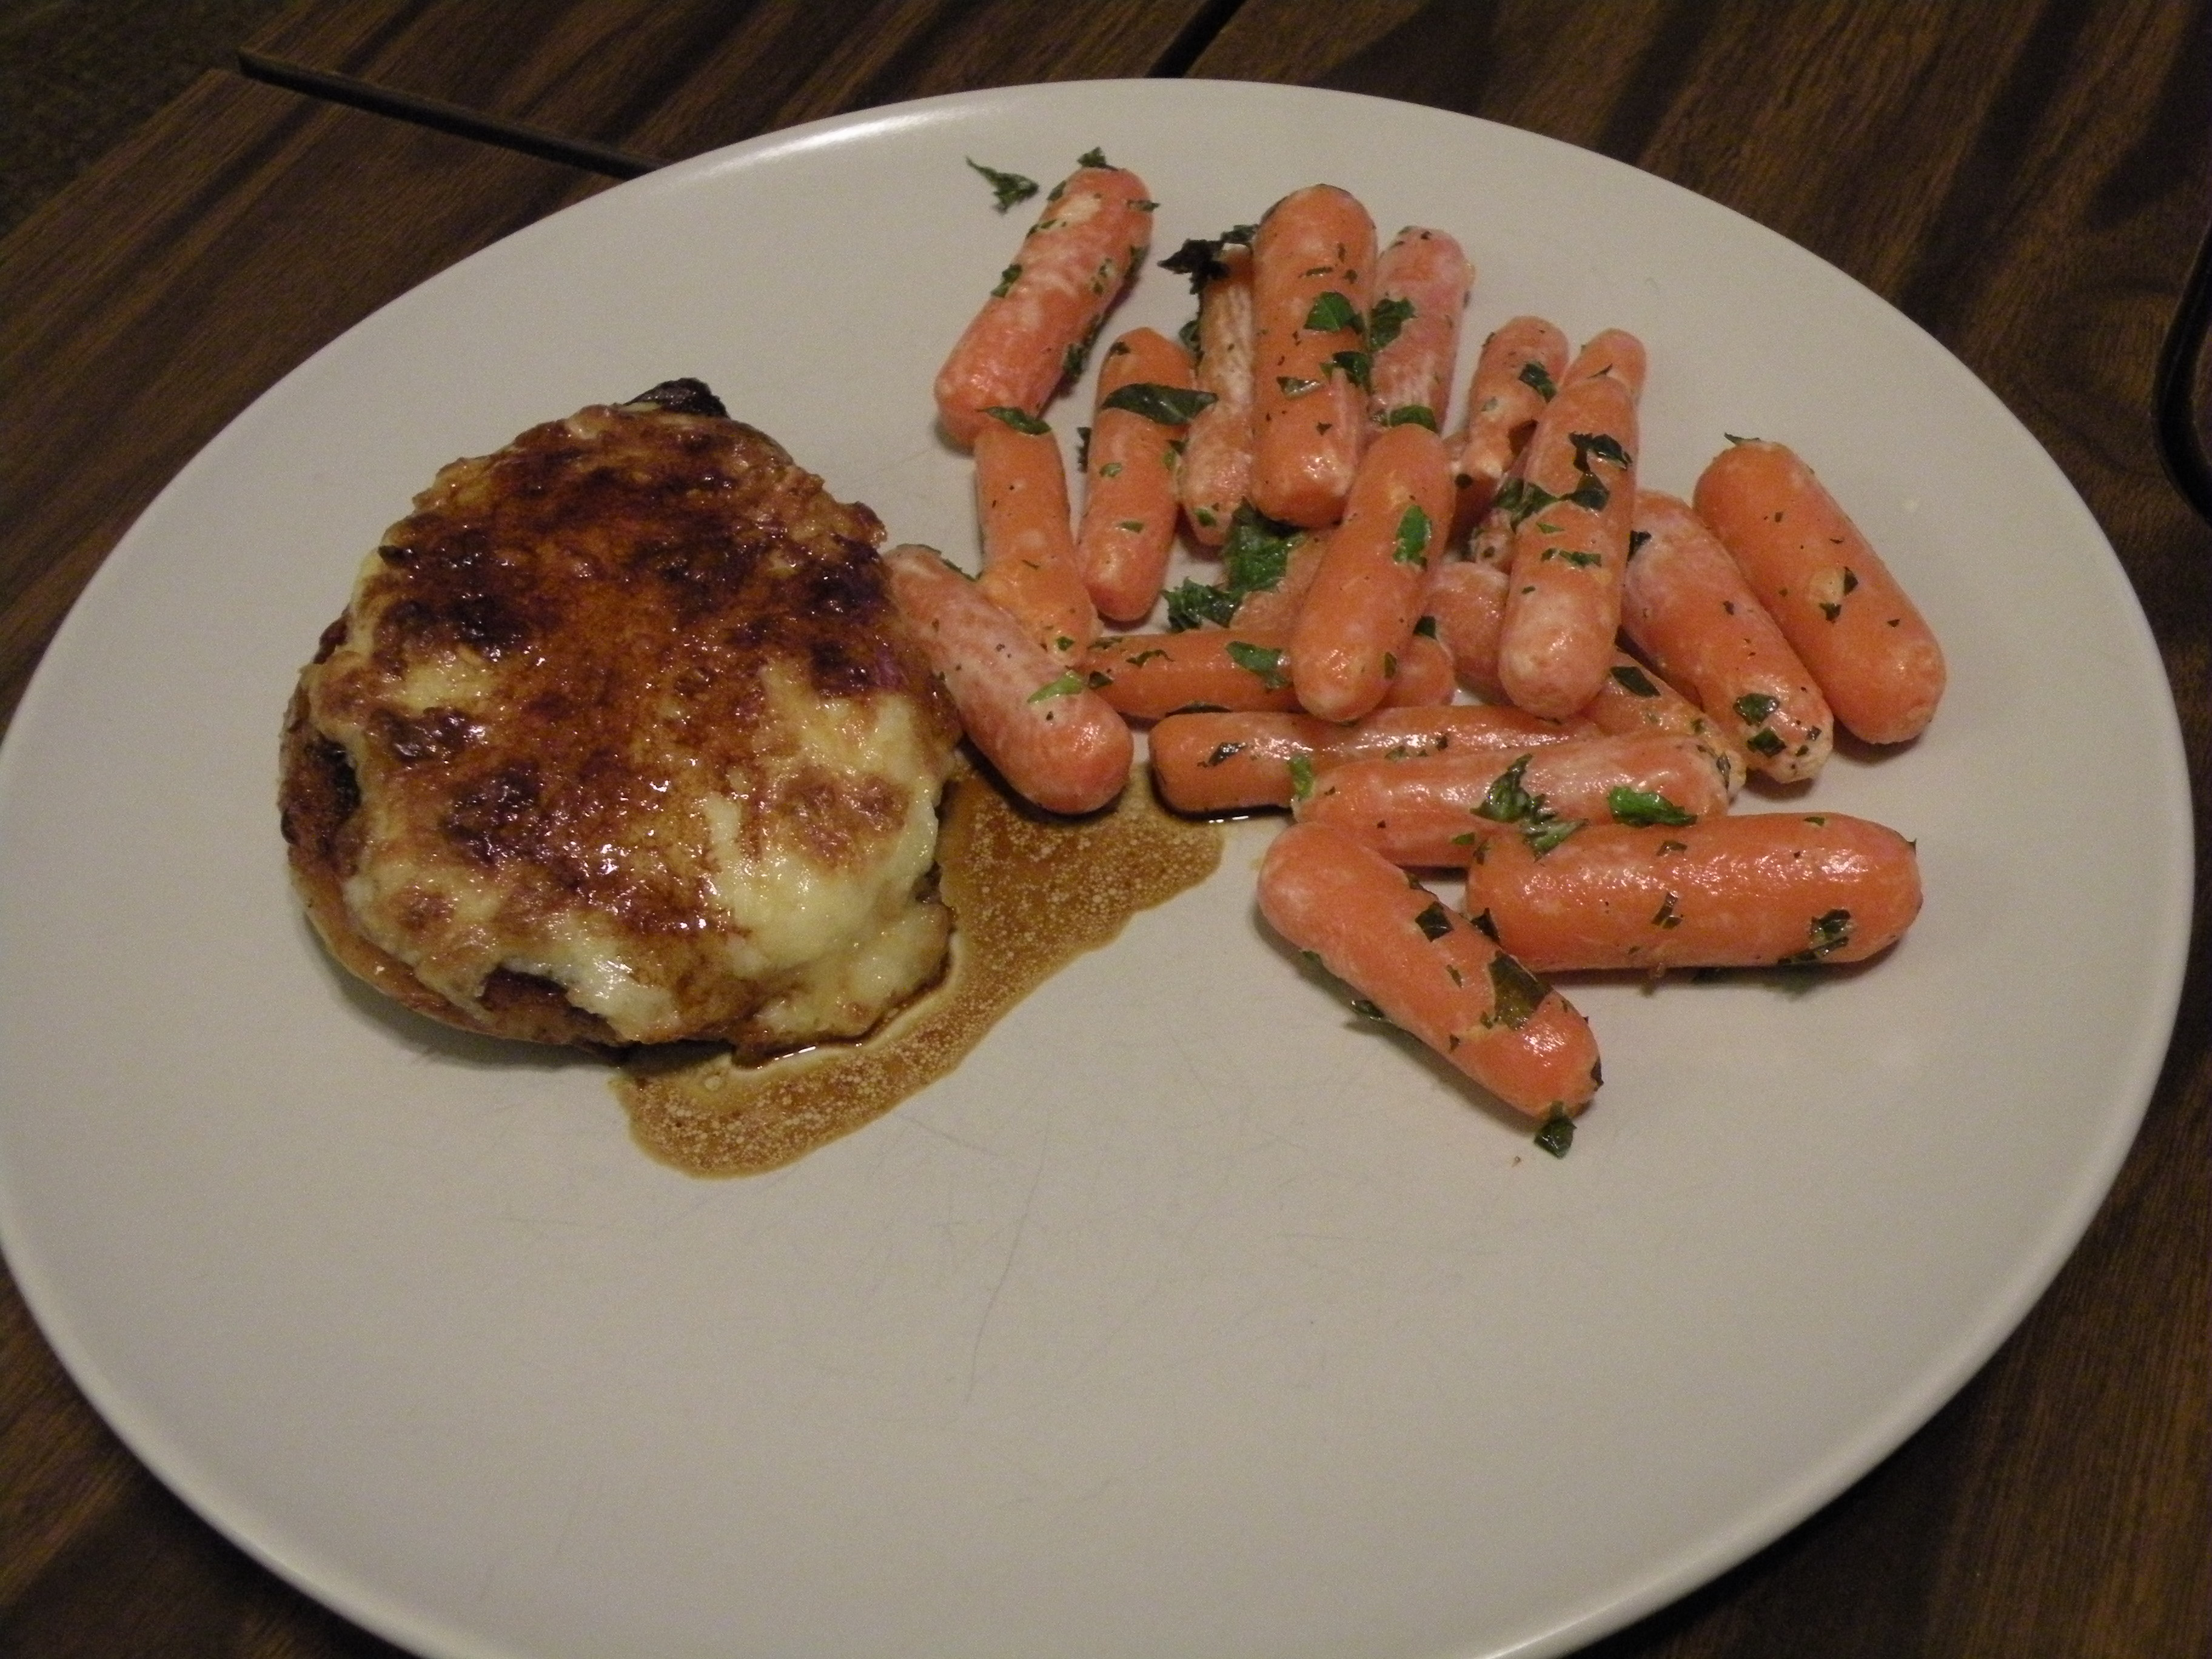 Greenbelt, MD :: Pork chops glazed with Gruyere cheese and carrots with mint. You should be jealous.